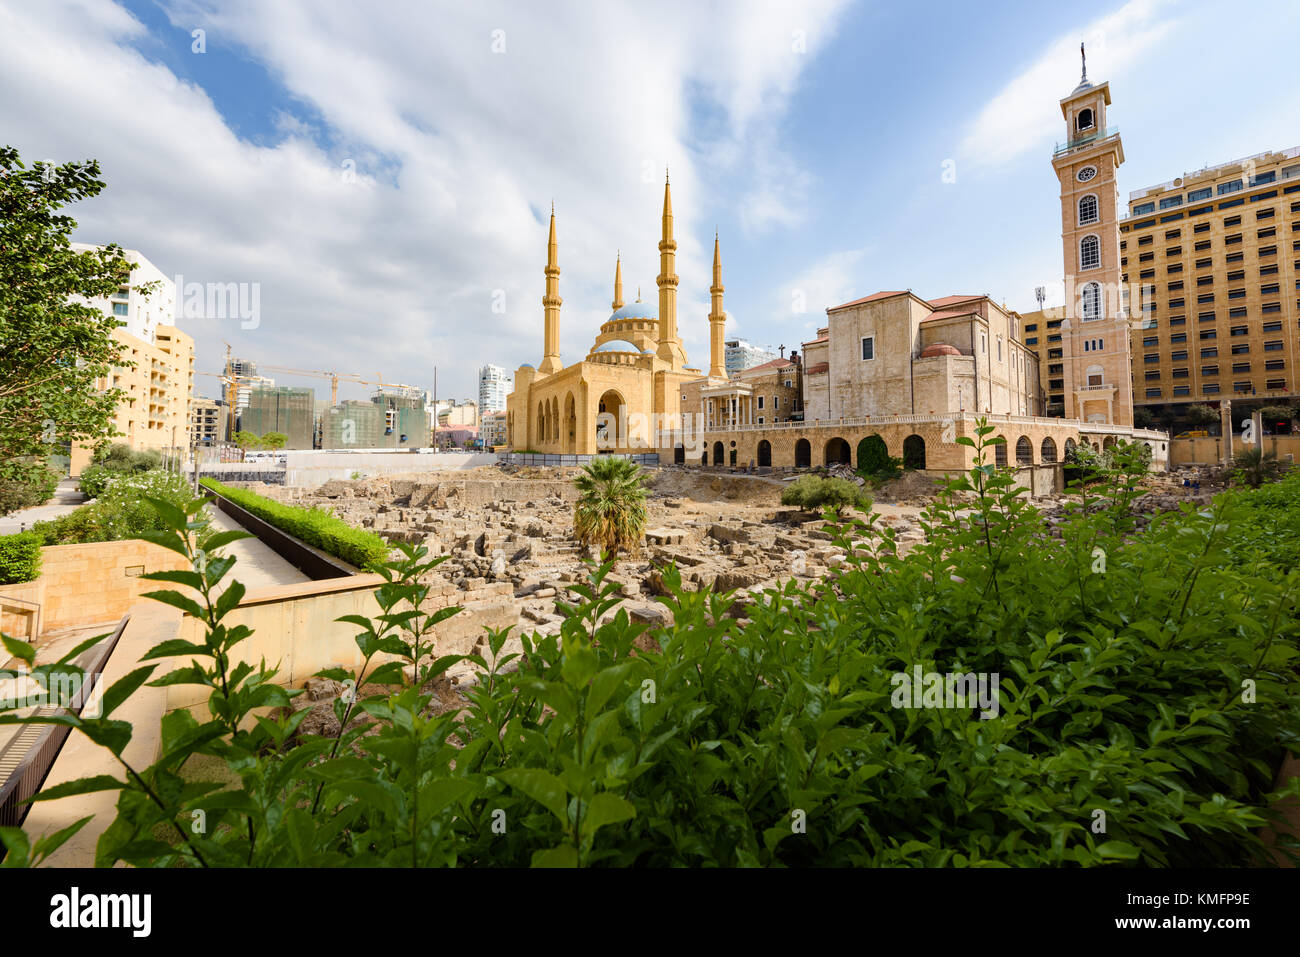 Saint George cathédrale maronite et Mohammad al amine mosquée bleue à travers les ruines romaines Photo Stock